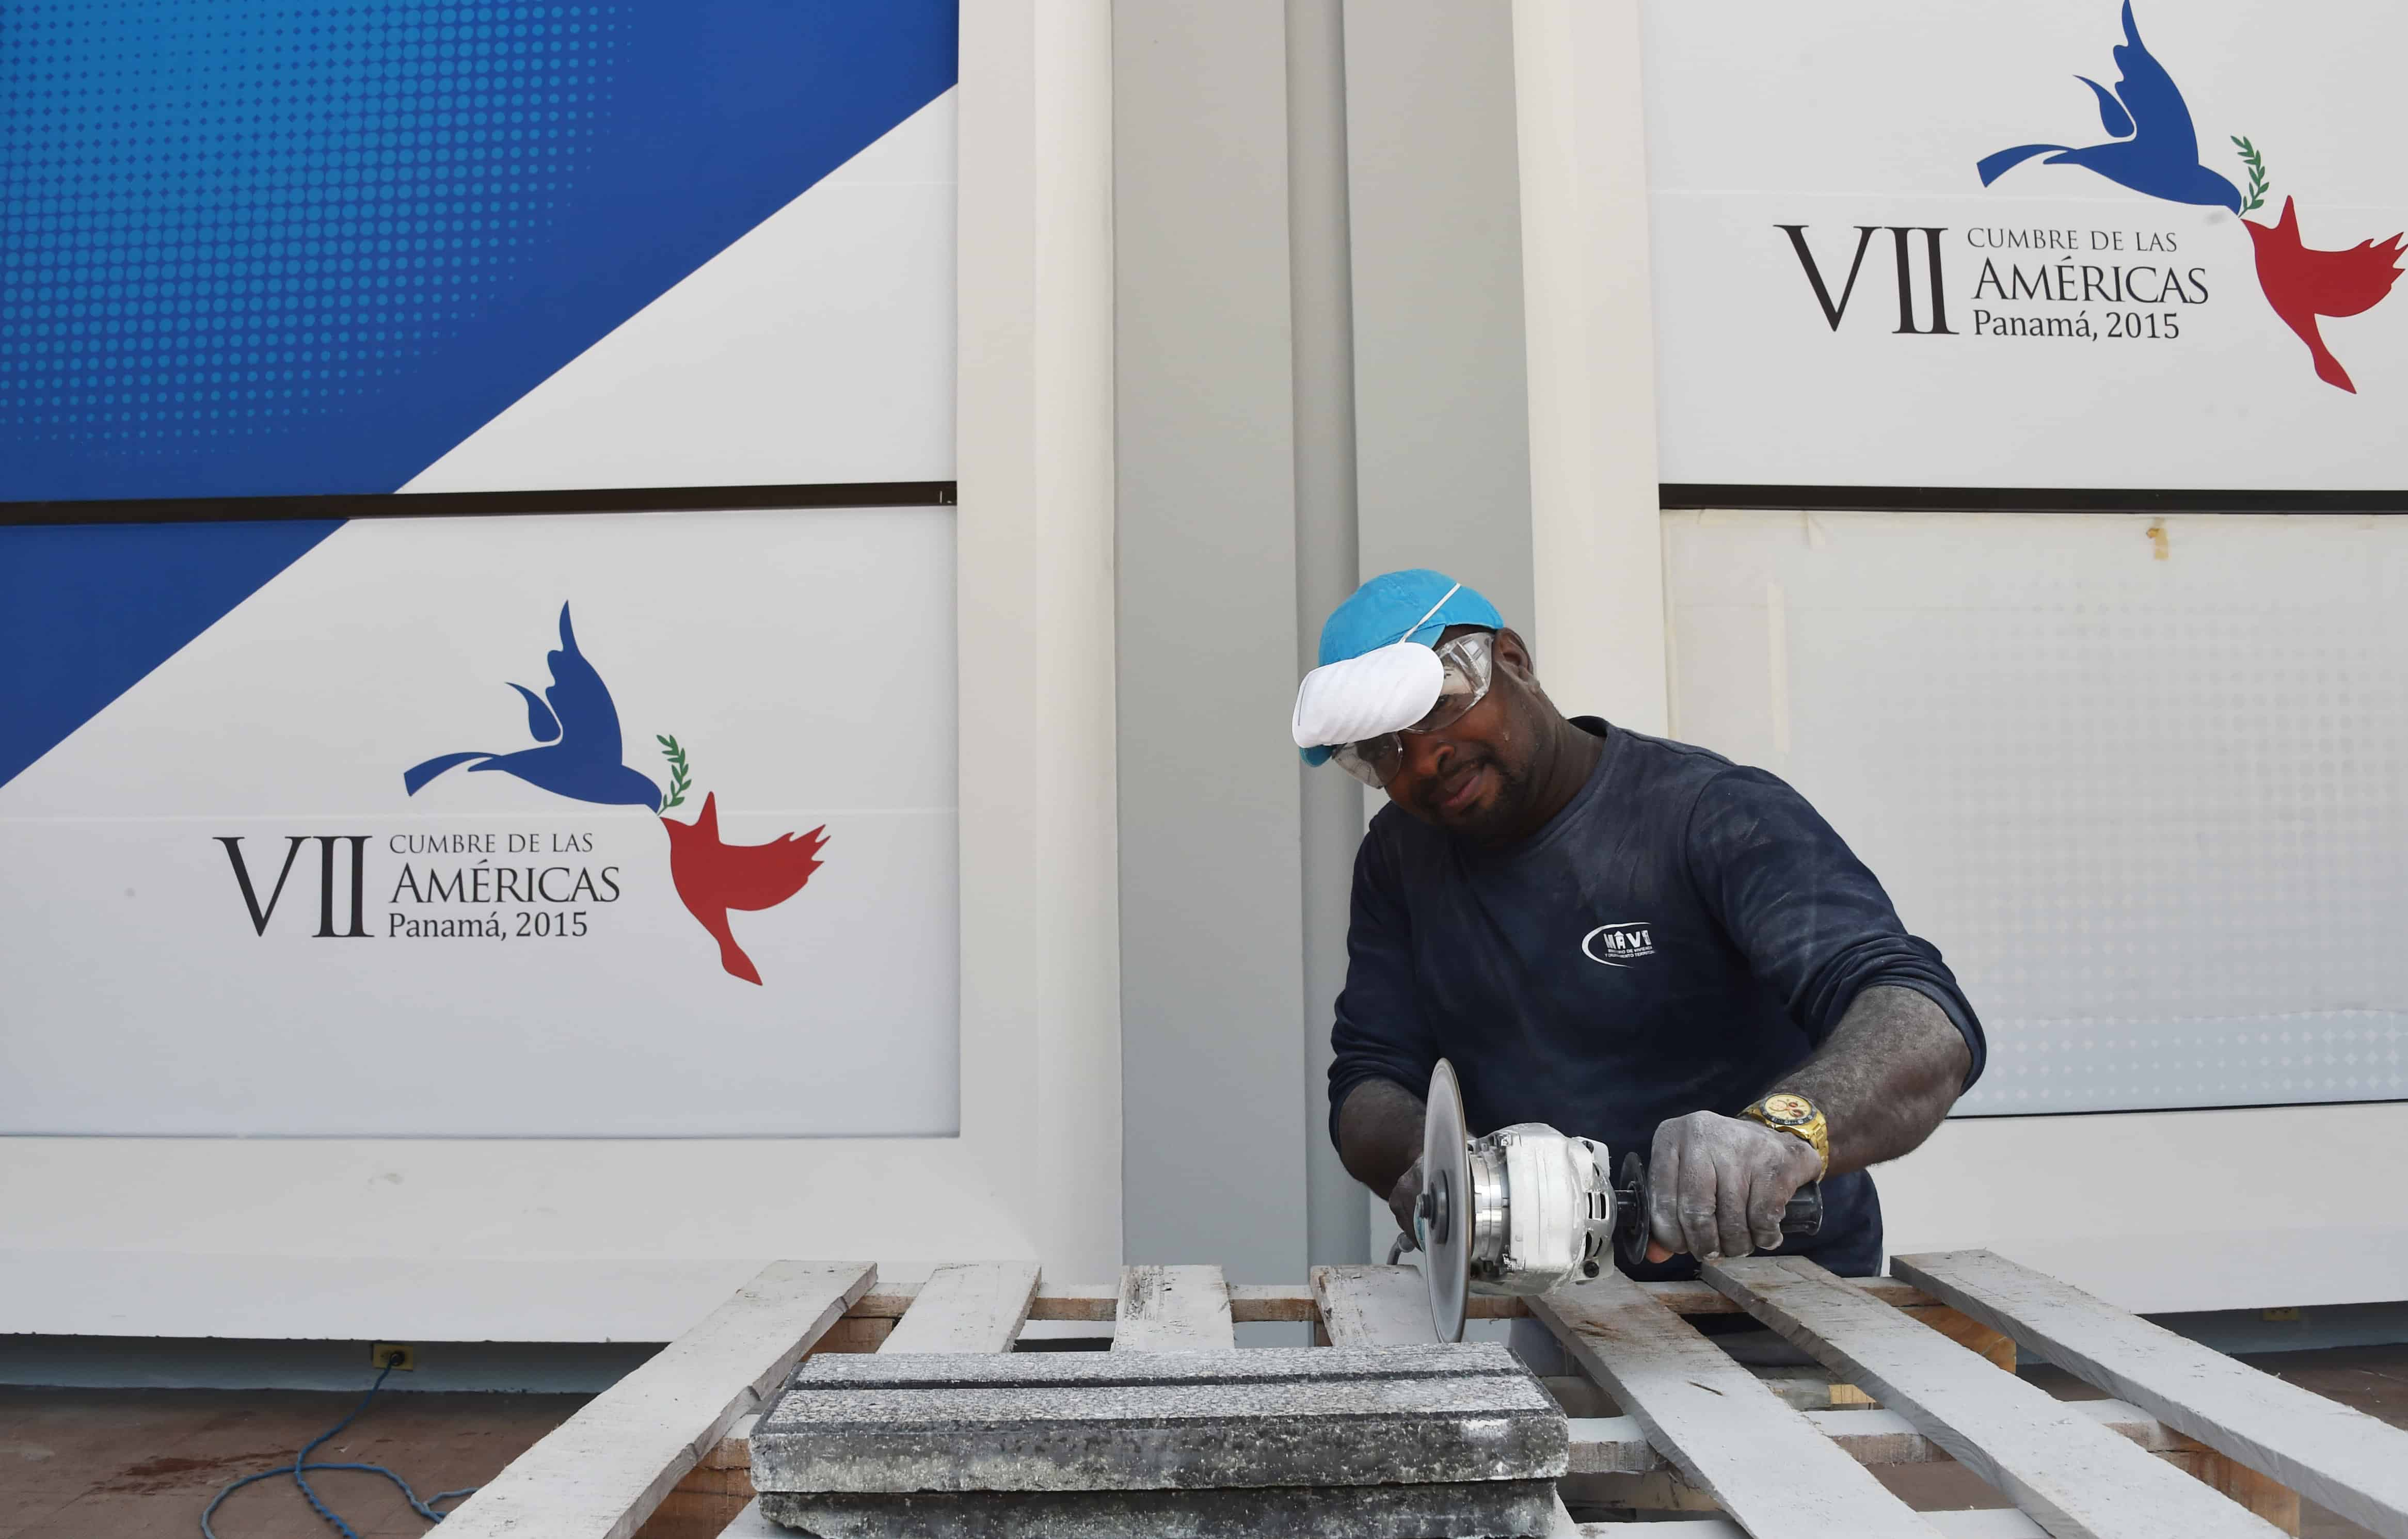 A worker at the Atlapa Convention Center gets ready for the upcoming VII Summit of the Americas, in Panama City.